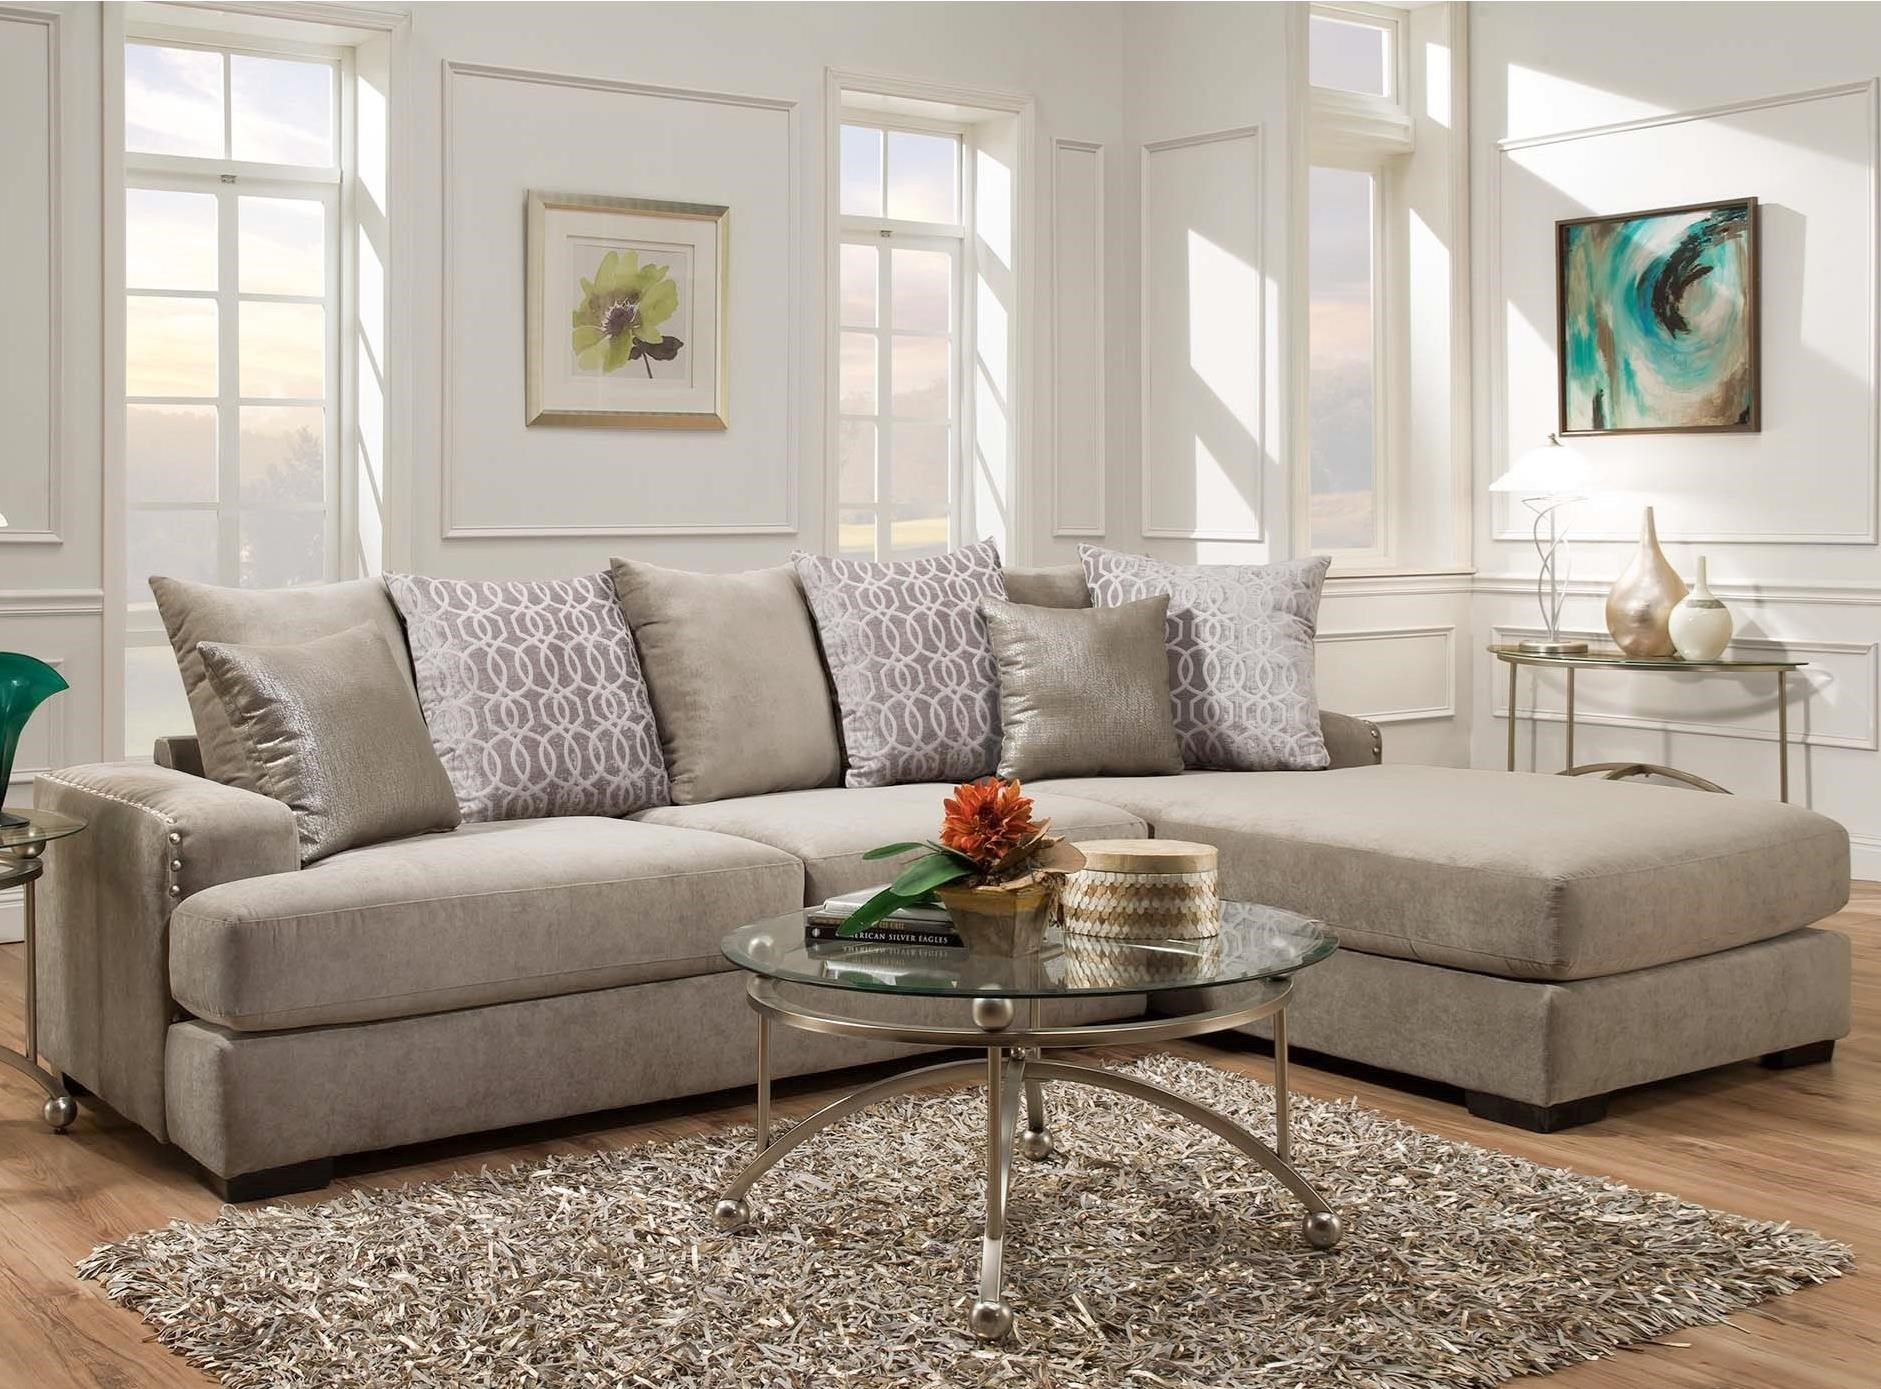 Albany 883 2 Piece Sectional Sofa with RAF Chaise Value City